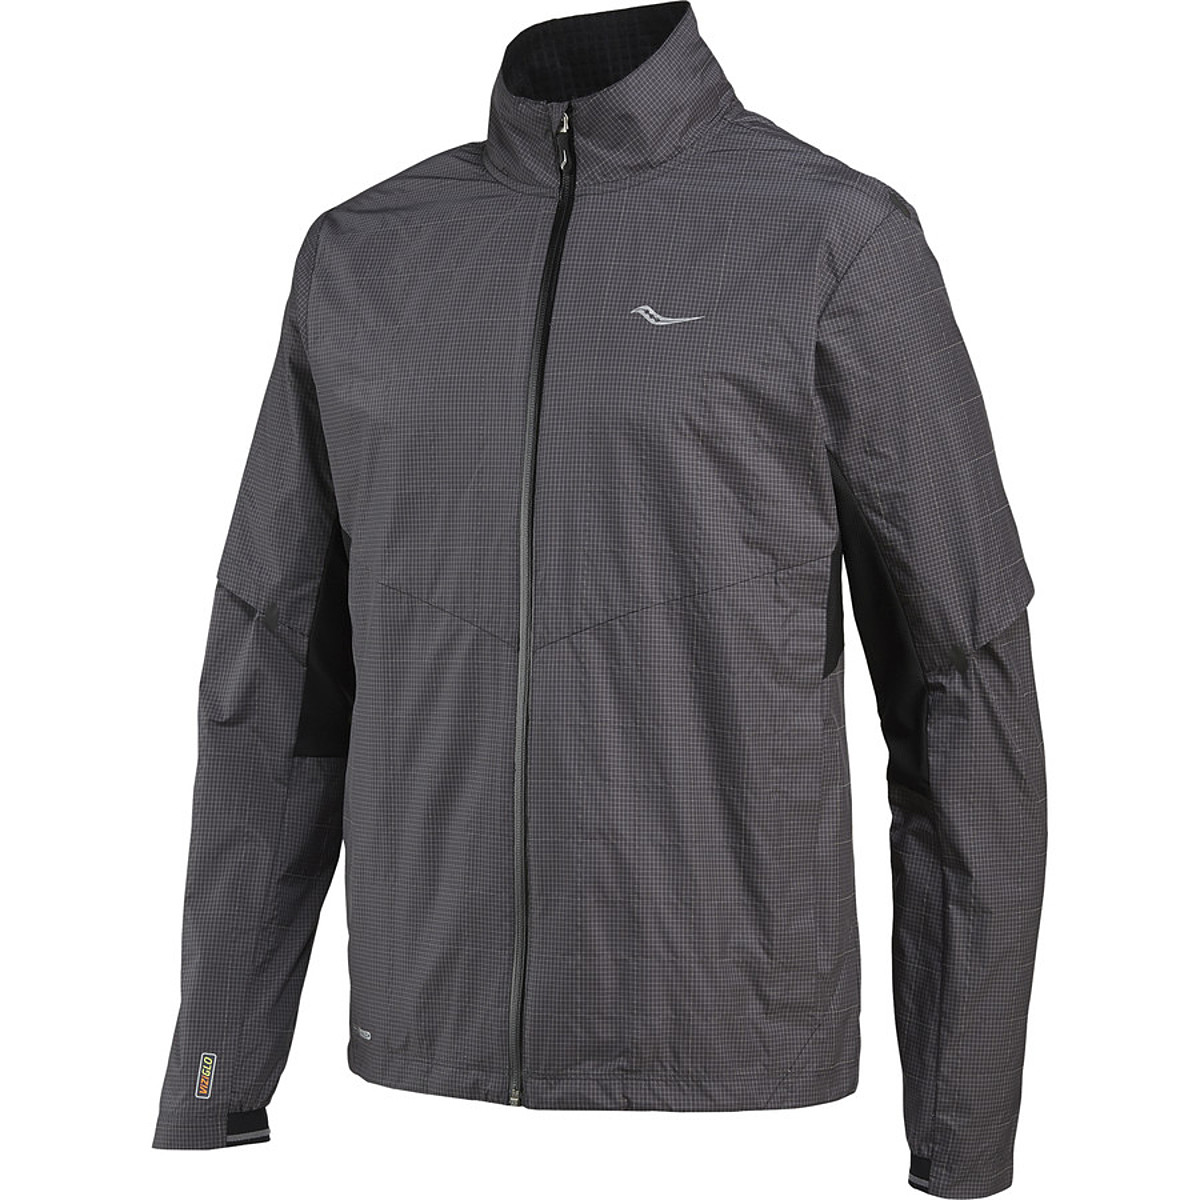 photo of a Saucony outdoor clothing product